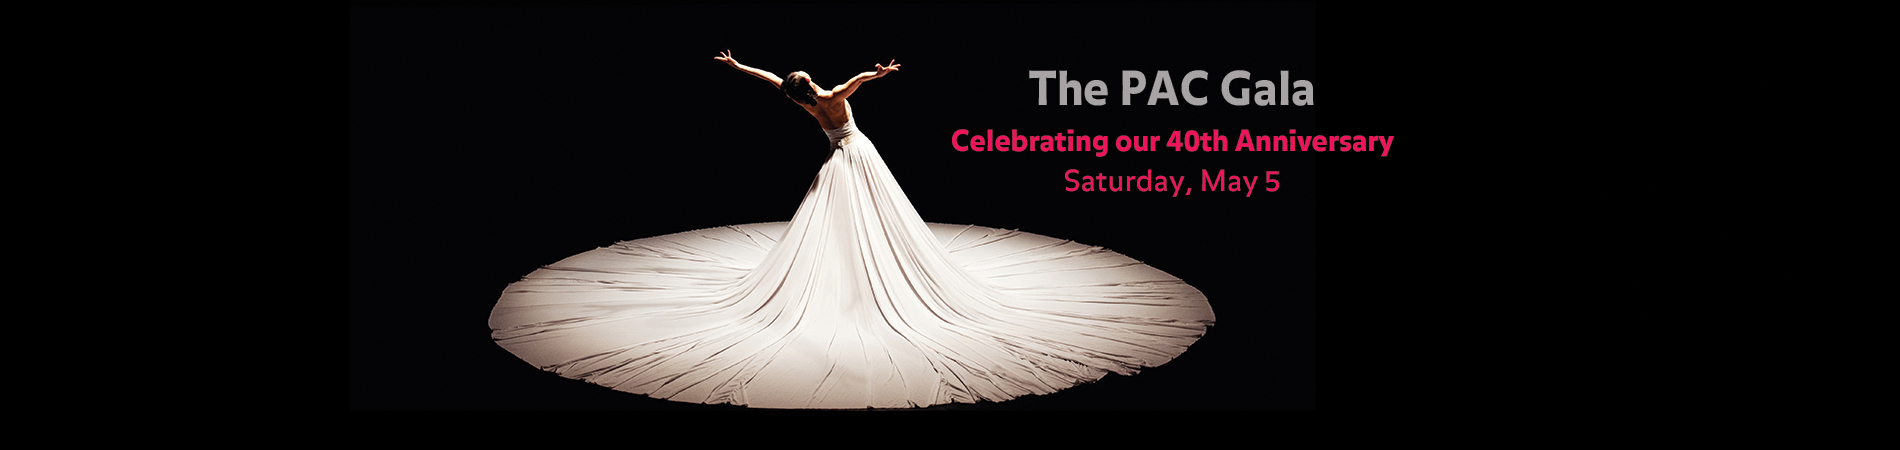 The PAC Gala Celebrating our 40th Anniversary Saturday May 5